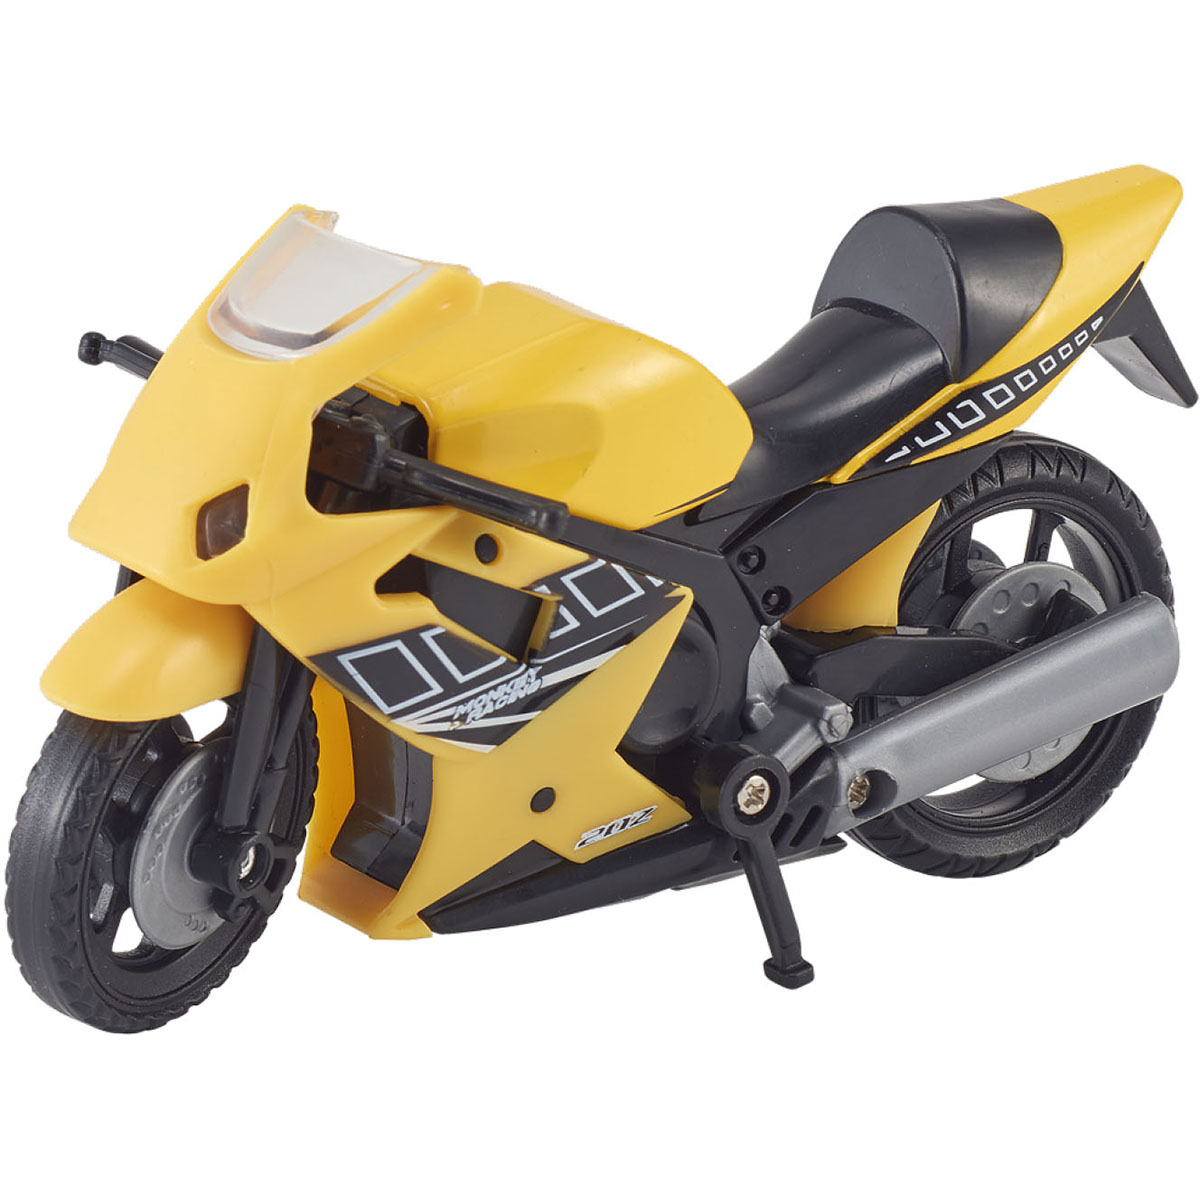 Motocicleta Teamsterz Speed Bike, Galben